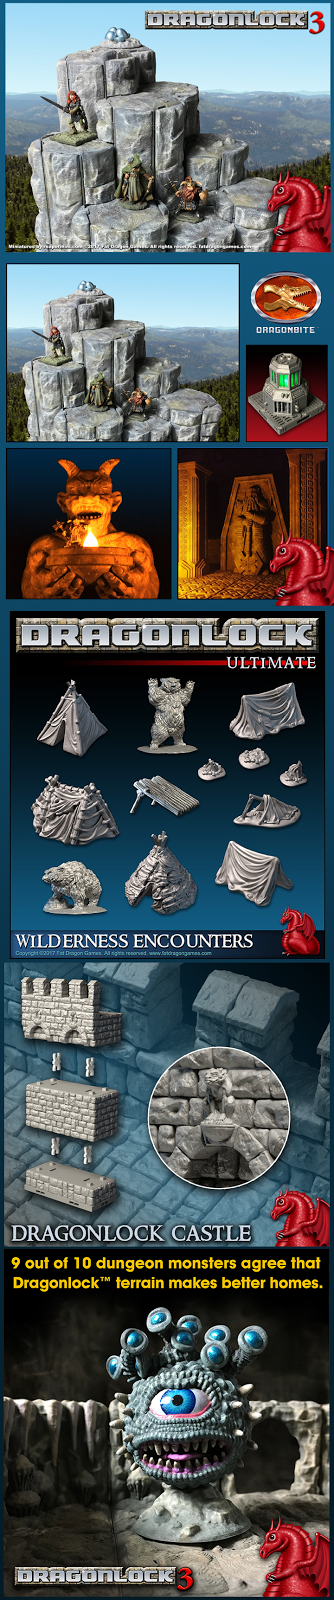 A partial peek at the Dragonlock 3 Kickstarter from Fat Dragon Games